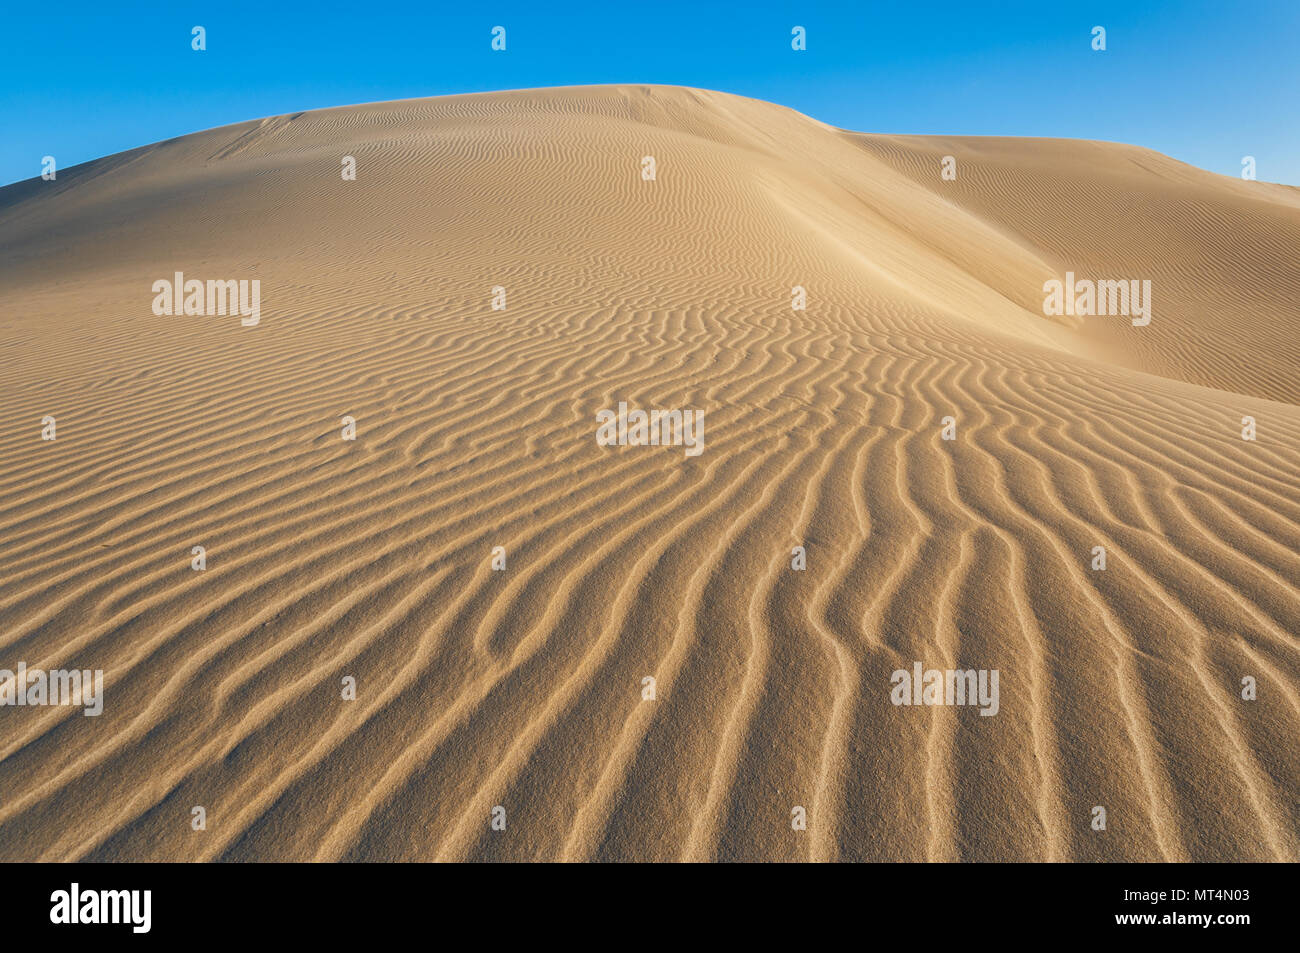 Sand patterns in the dunes of Eucla. - Stock Image